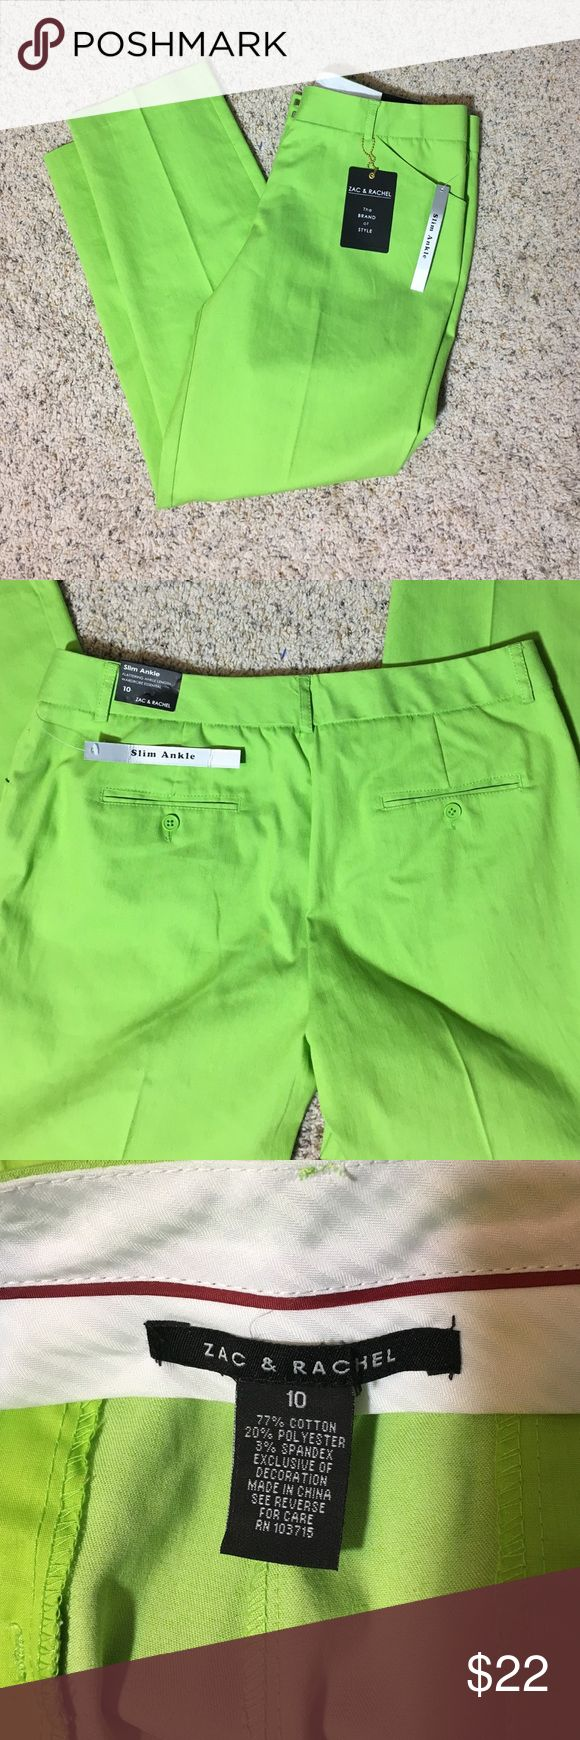 NWT Lime Green Ankle Length Pants Gorgeous lime color for summer!  Slim fit, ankle length.  Cotton/Poly/Spandex.  Size 10 Zac & Rachel Pants Ankle & Cropped